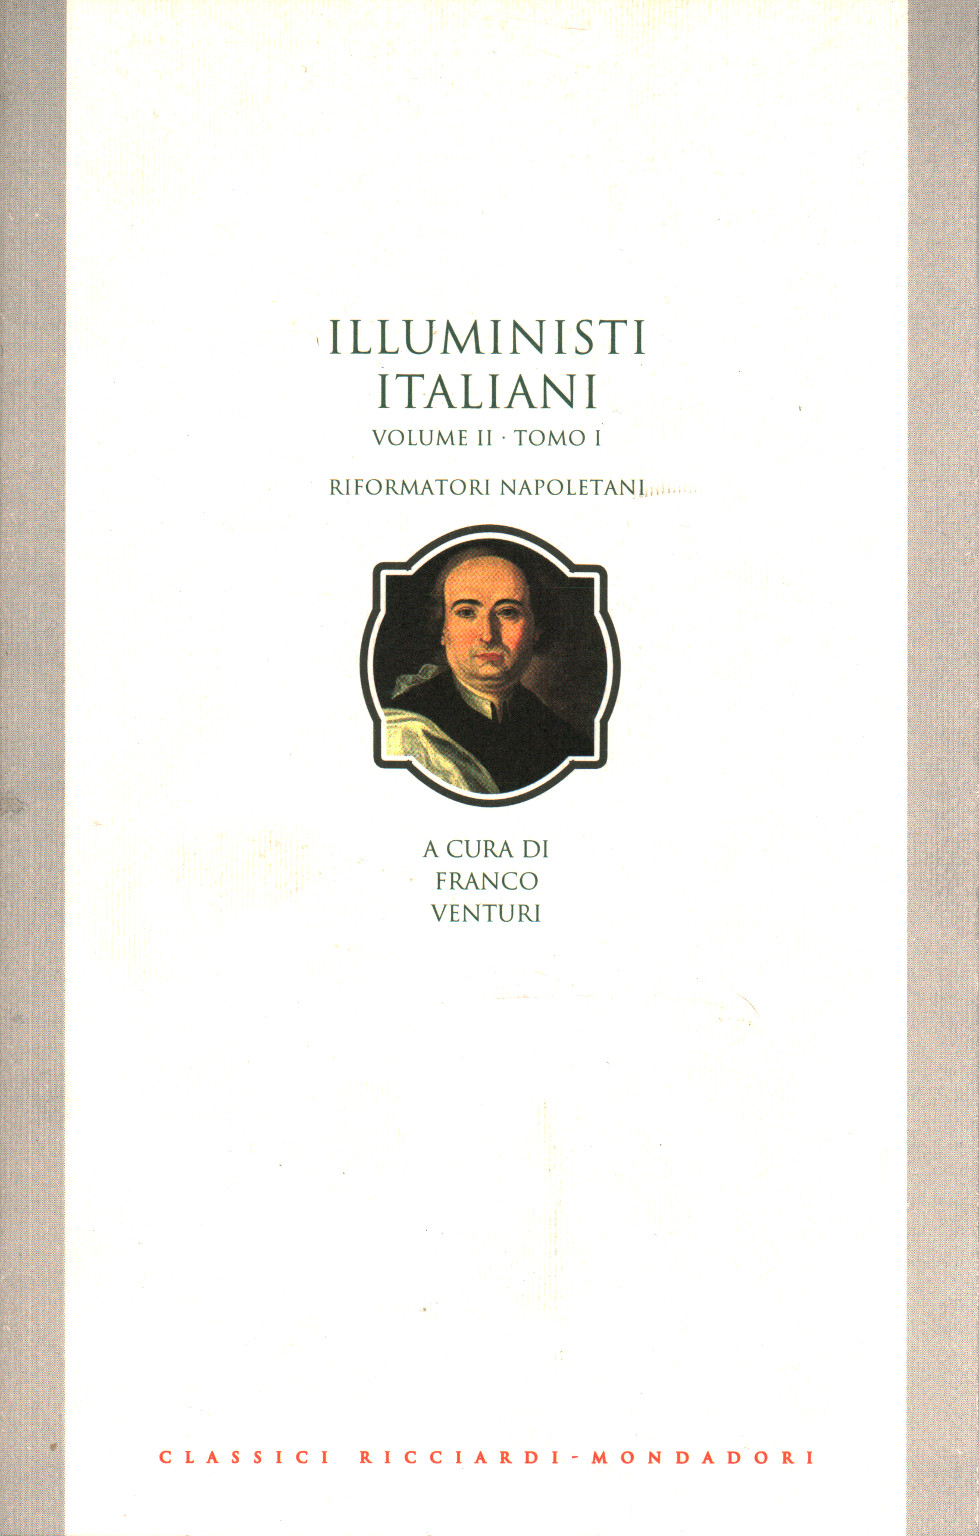 The enlightenment in italy. The reformers of the neapolitan (Volu, s.a.